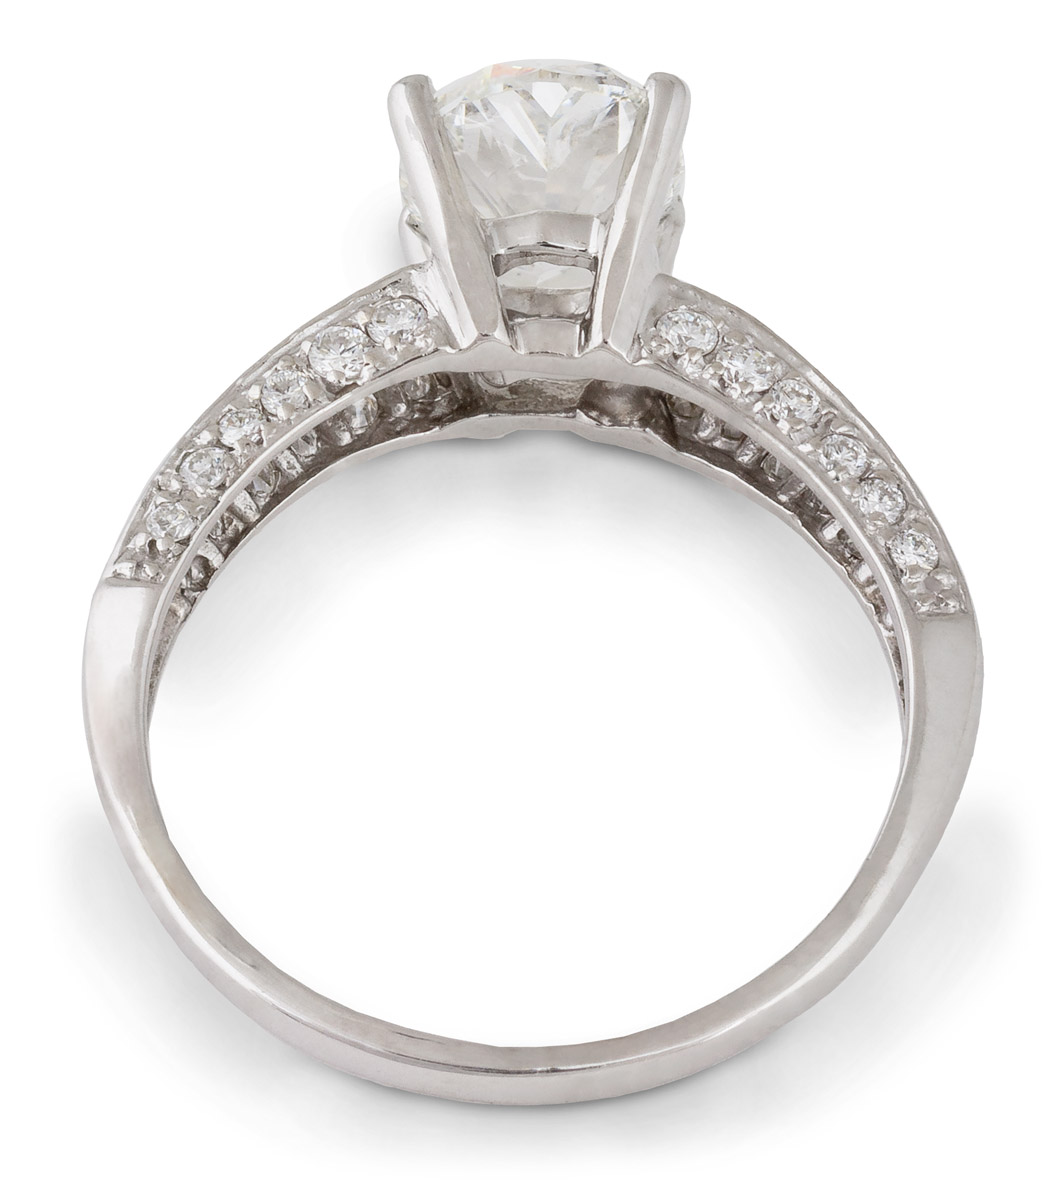 Oval Diamond Engagement Ring with Round Brilliant Diamond Accents - Top